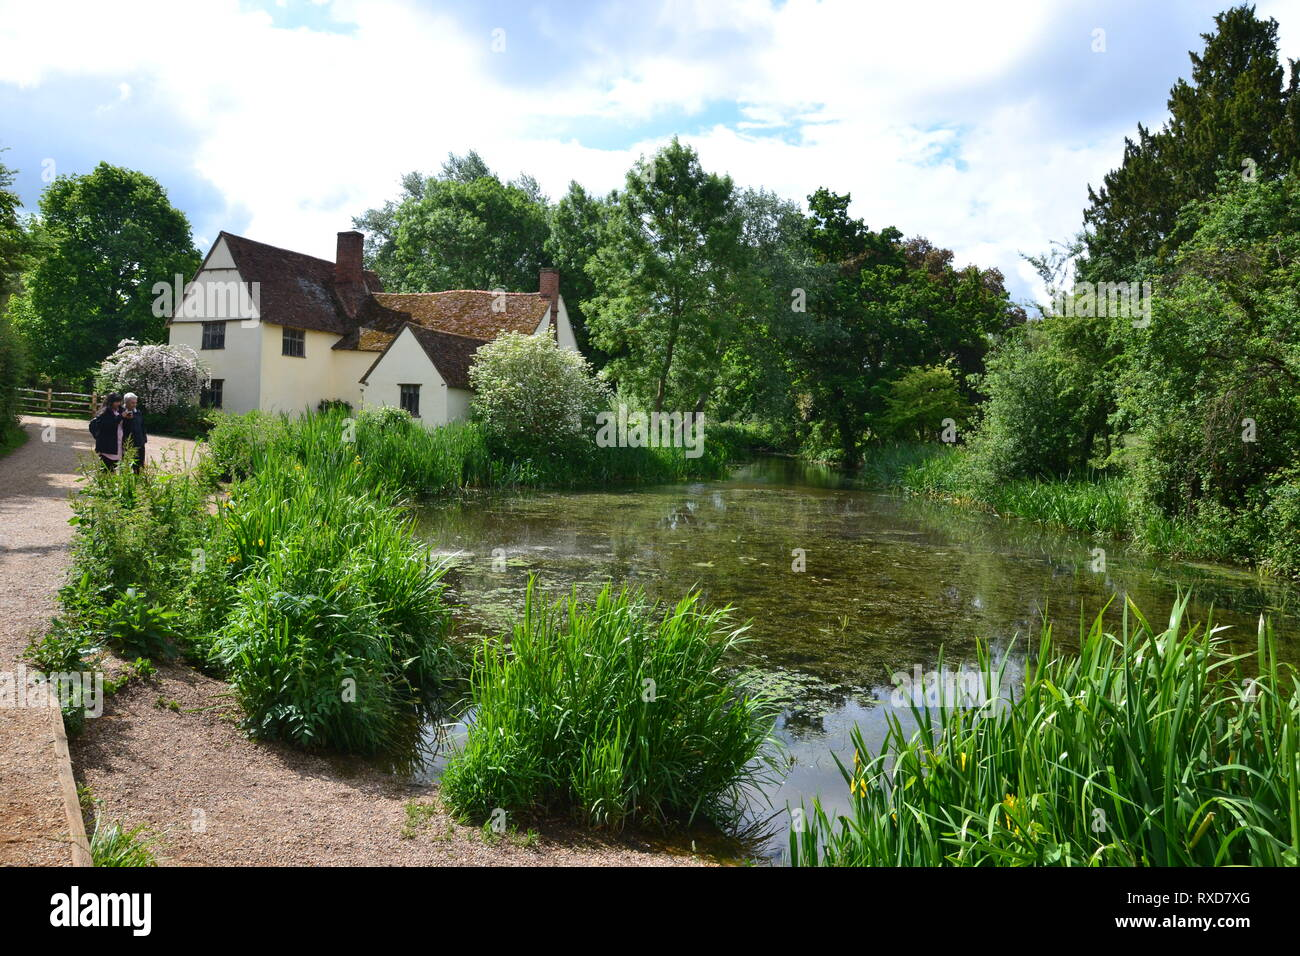 Willy Lott's House at Flatford, Suffolk, UK - Stock Image